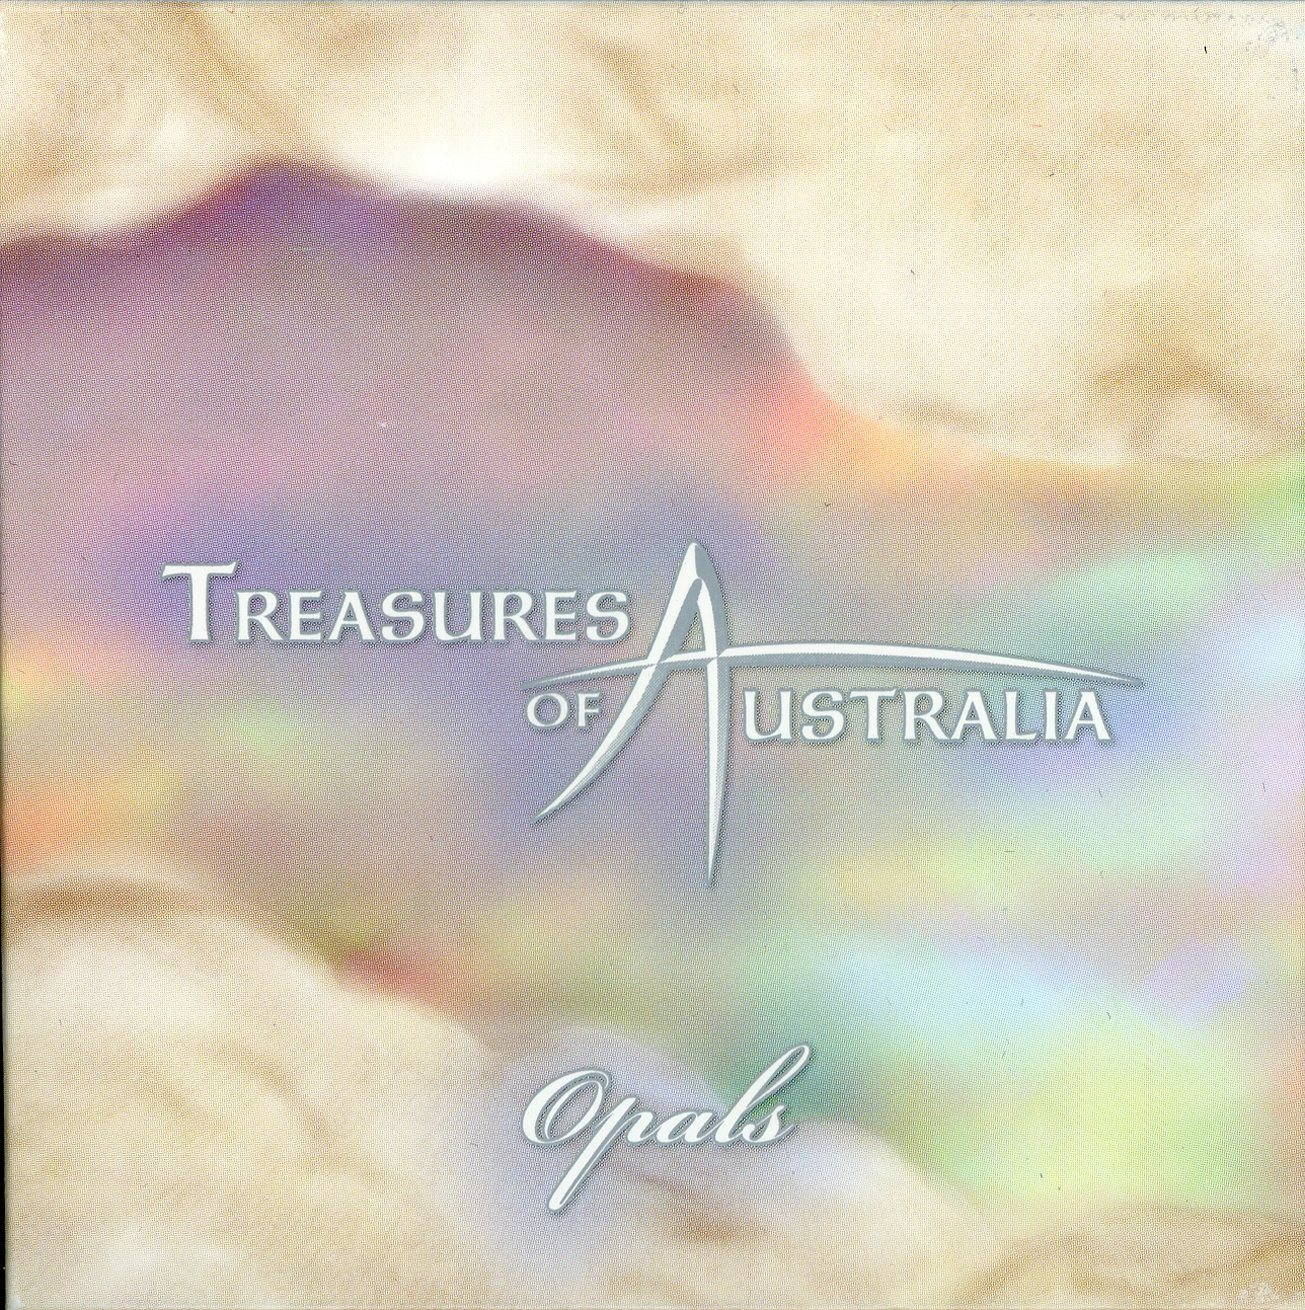 Thumbnail for 2008 Treasures of Australia 1oz Silver Locket Coin - Opal